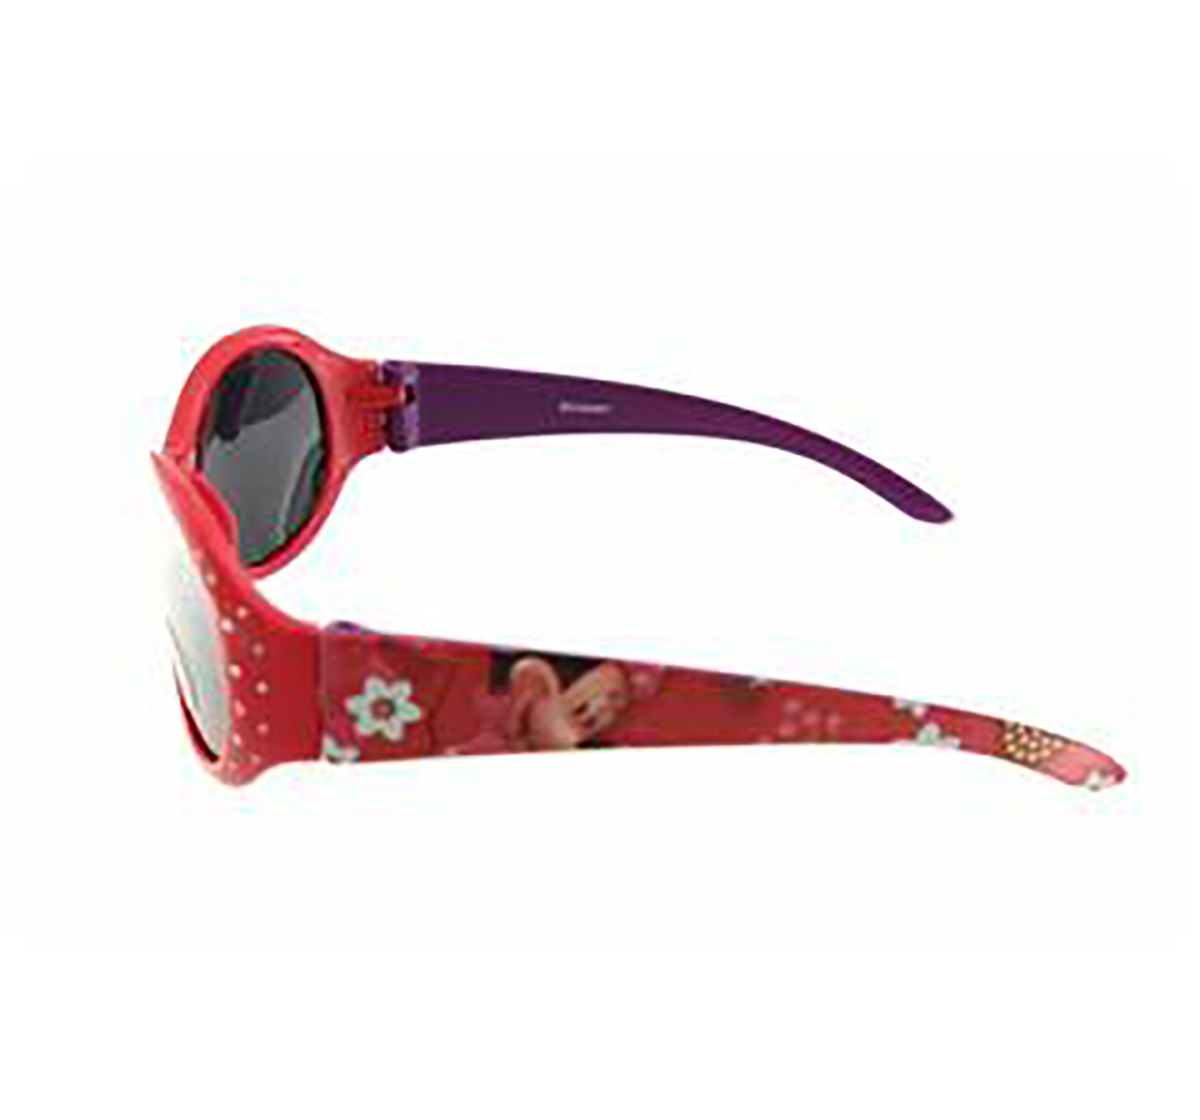 Disney   Disney Minnie Mouse Sunglasses With Polarized Lens Novelty for Girls age 3Y+ (Red)